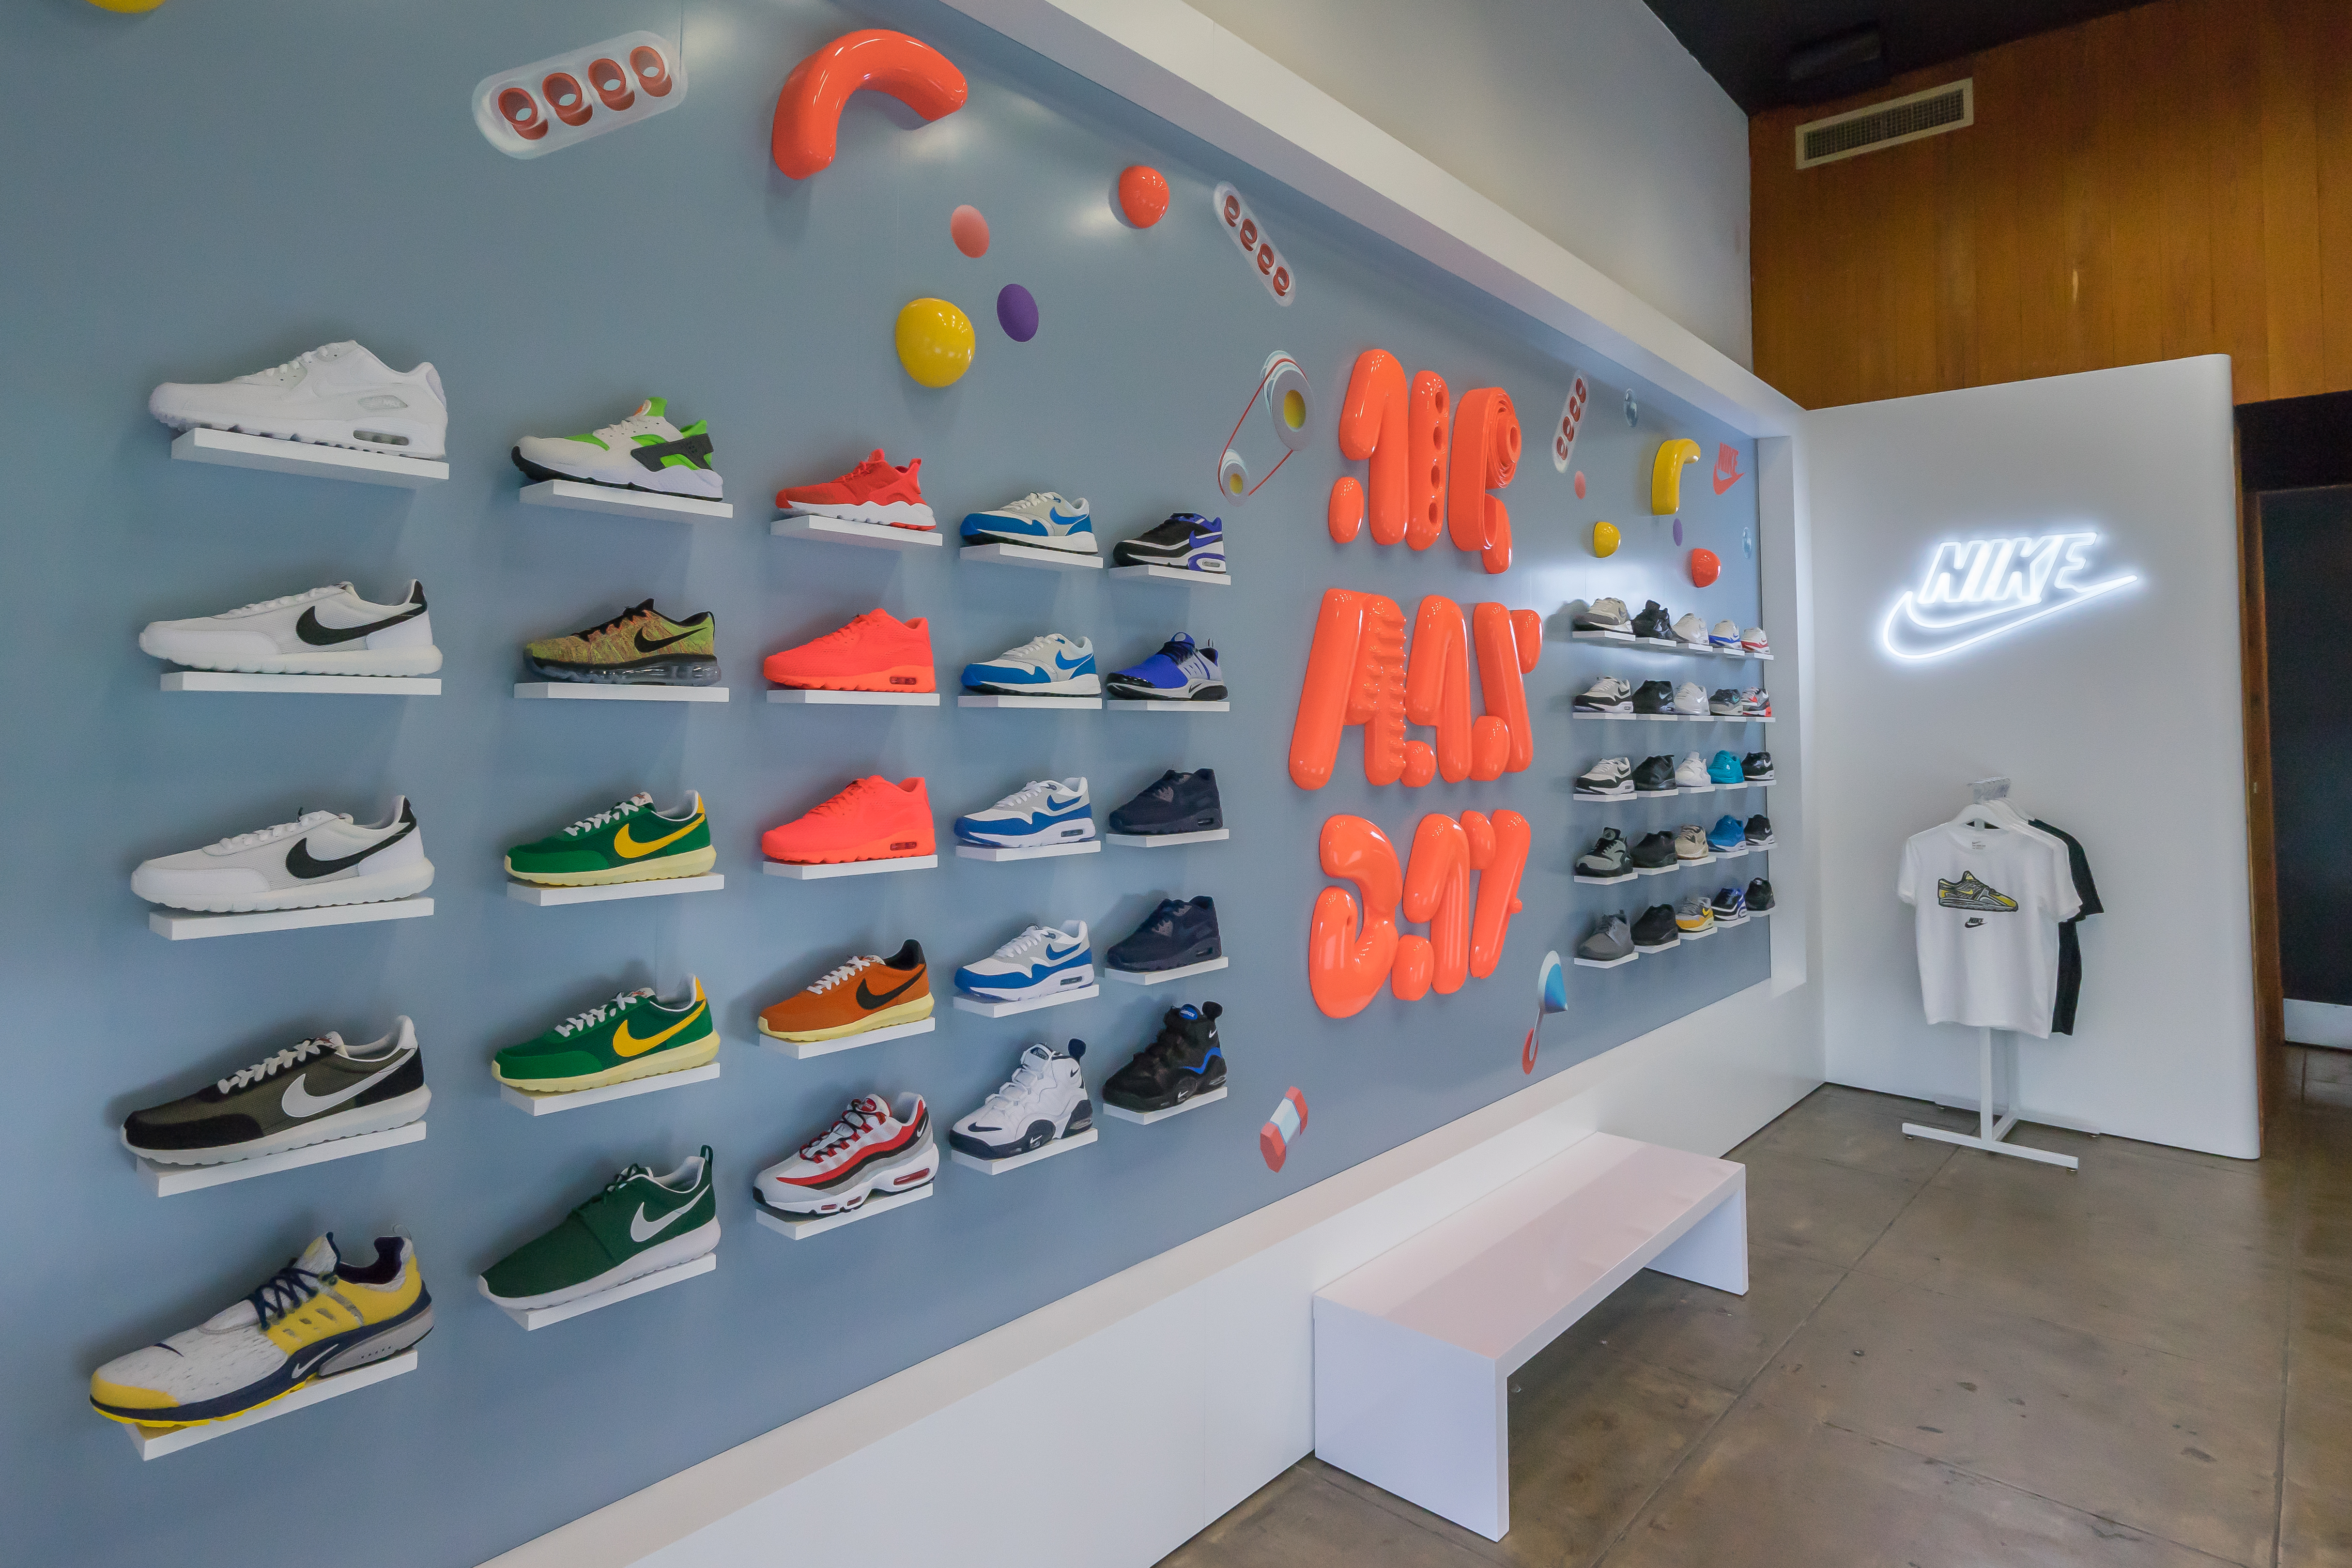 ac40a5999b4b1 Nike s New Air Max Pop-Up on La Brea Is Sneakerhead Heaven - Racked LA